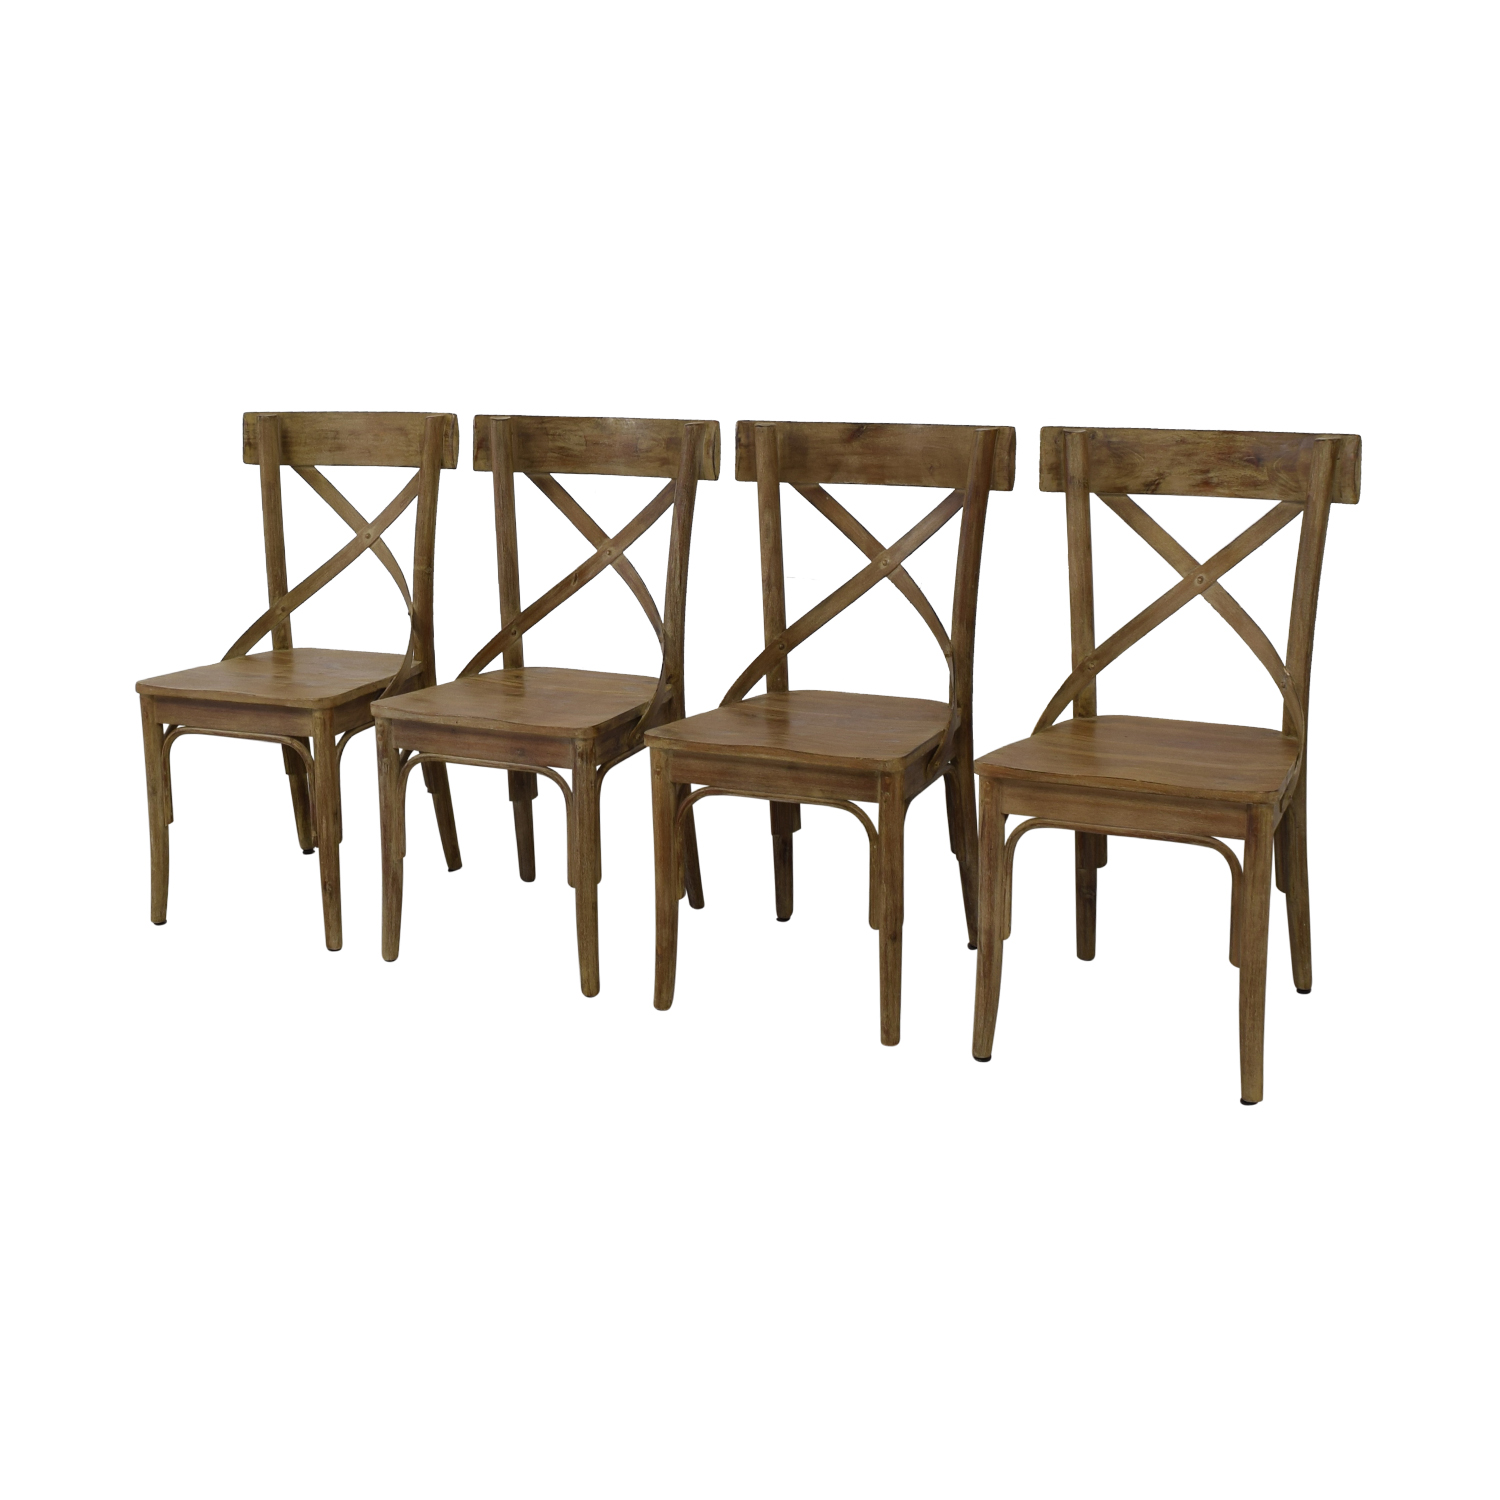 World Market Dining Chairs / Dining Chairs